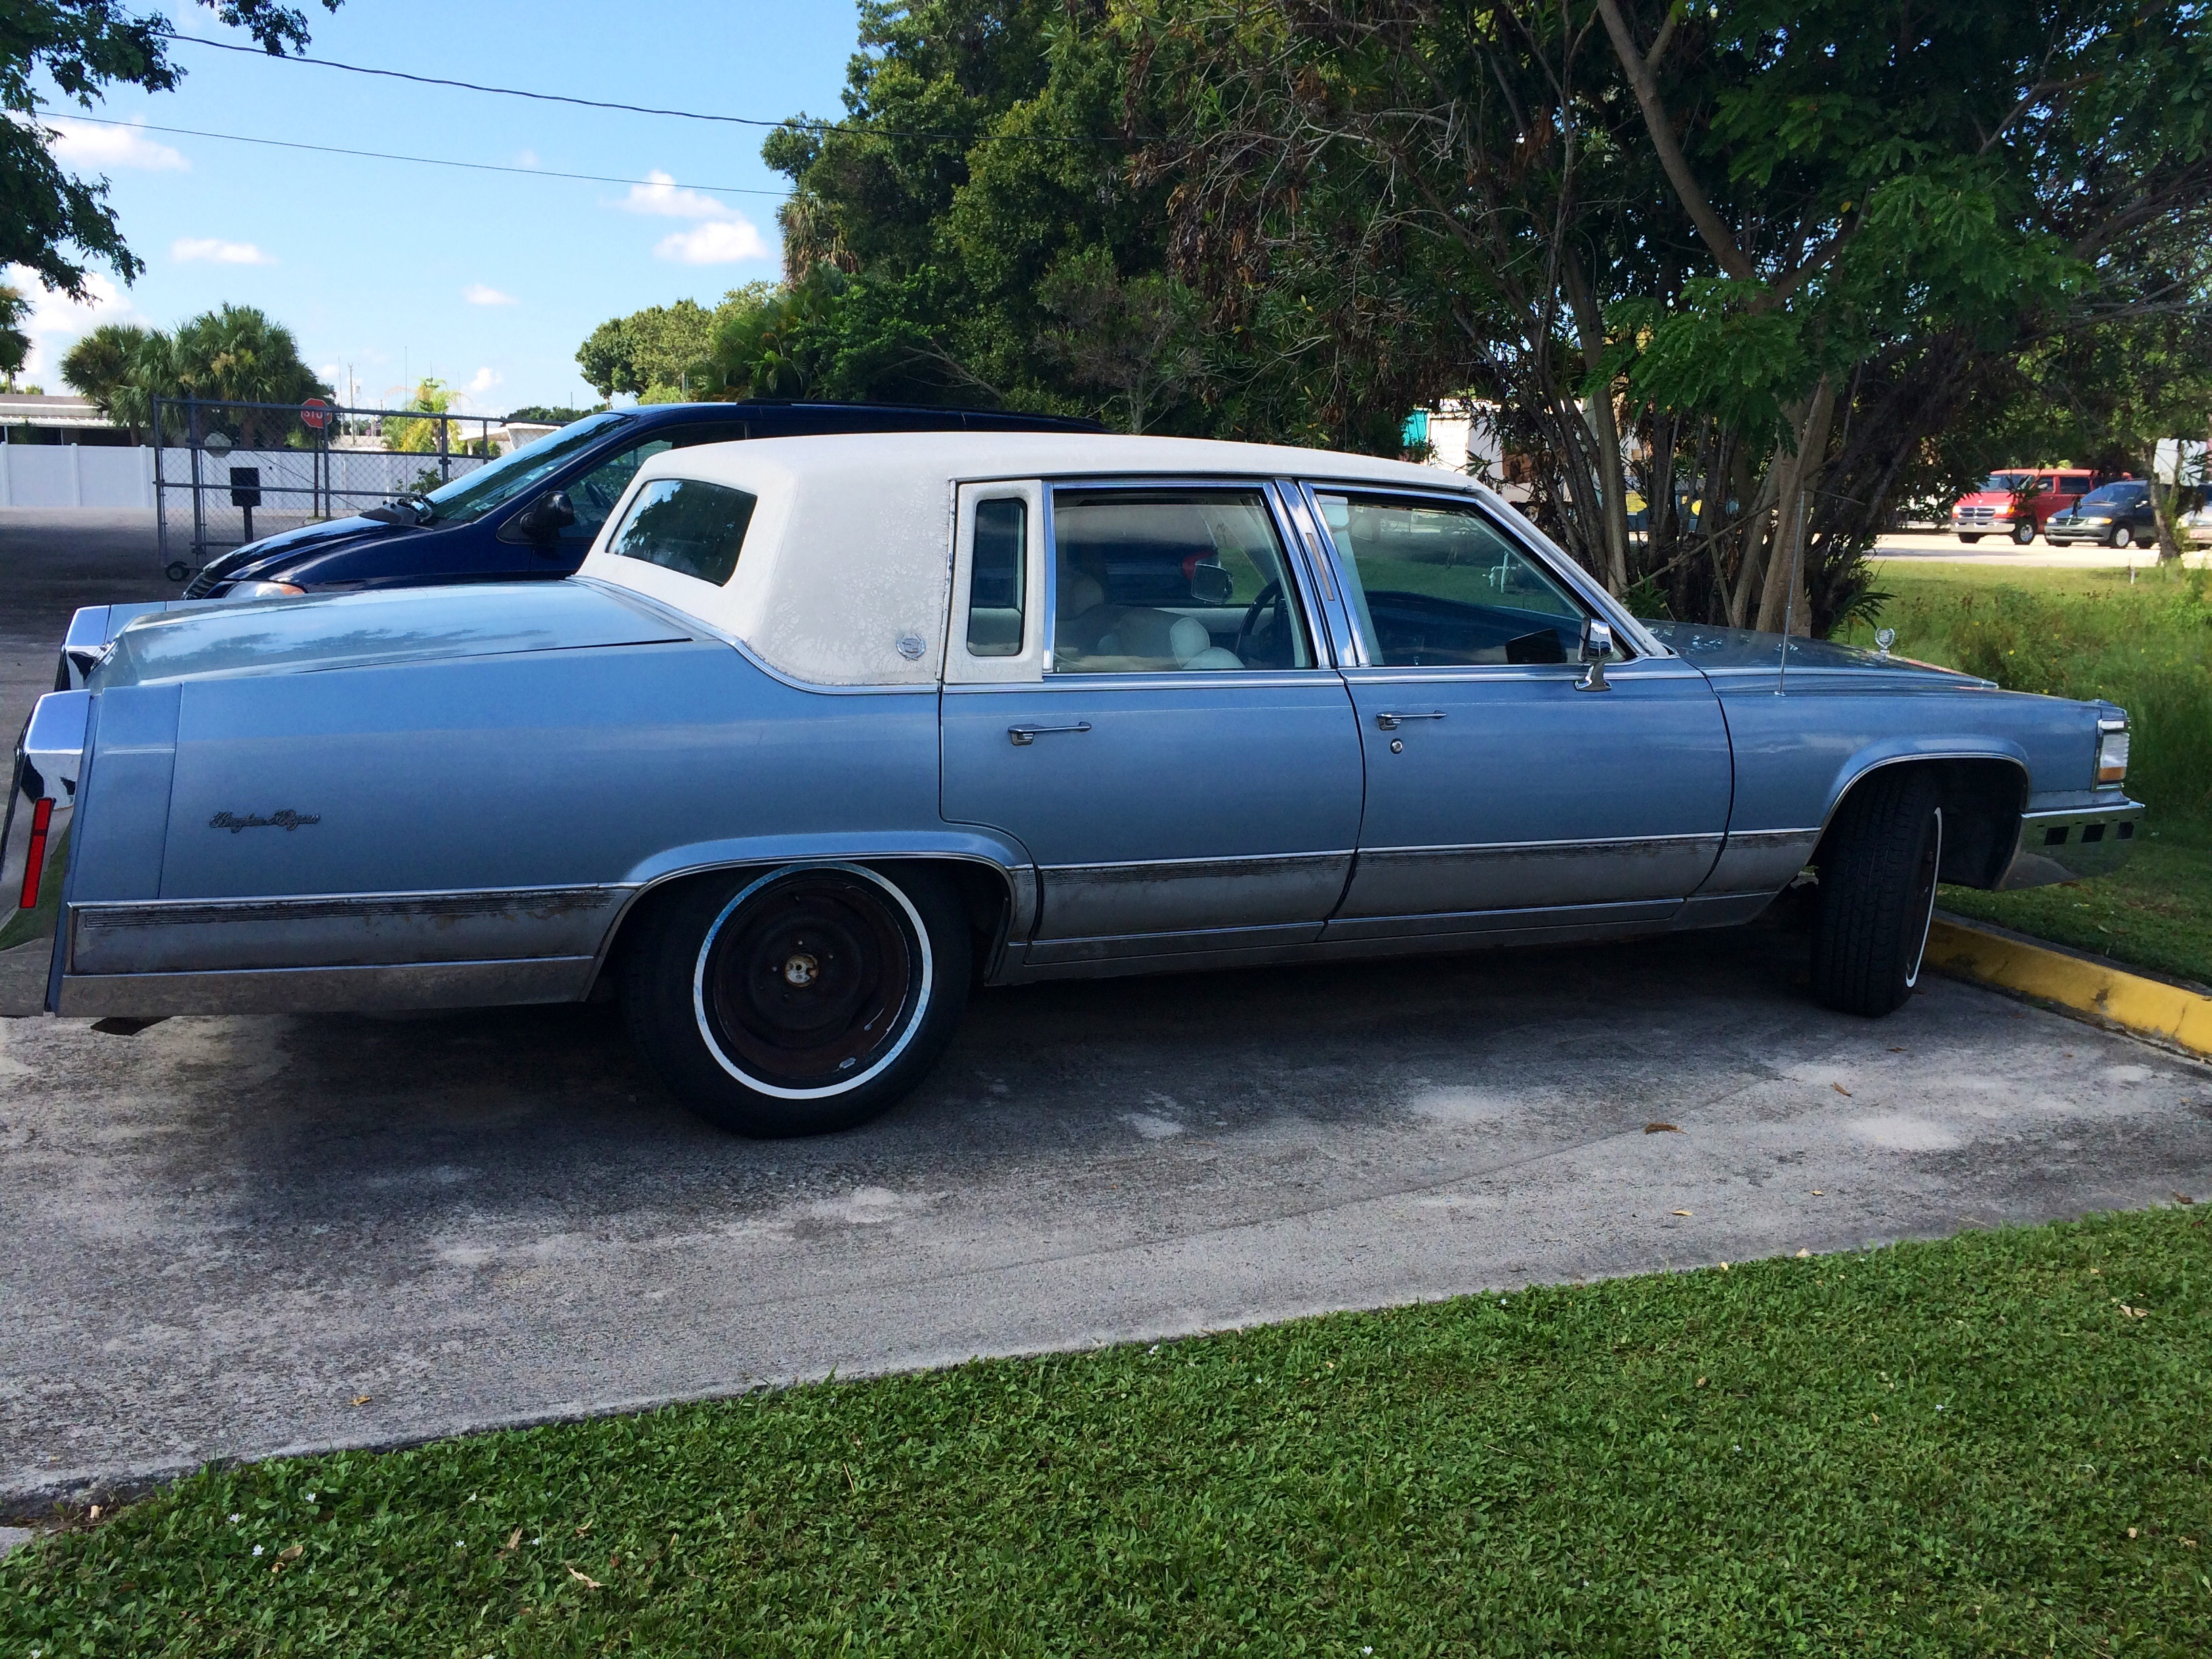 biloxi cadillac of a sale house fleetwood vicari at auctions for auction image